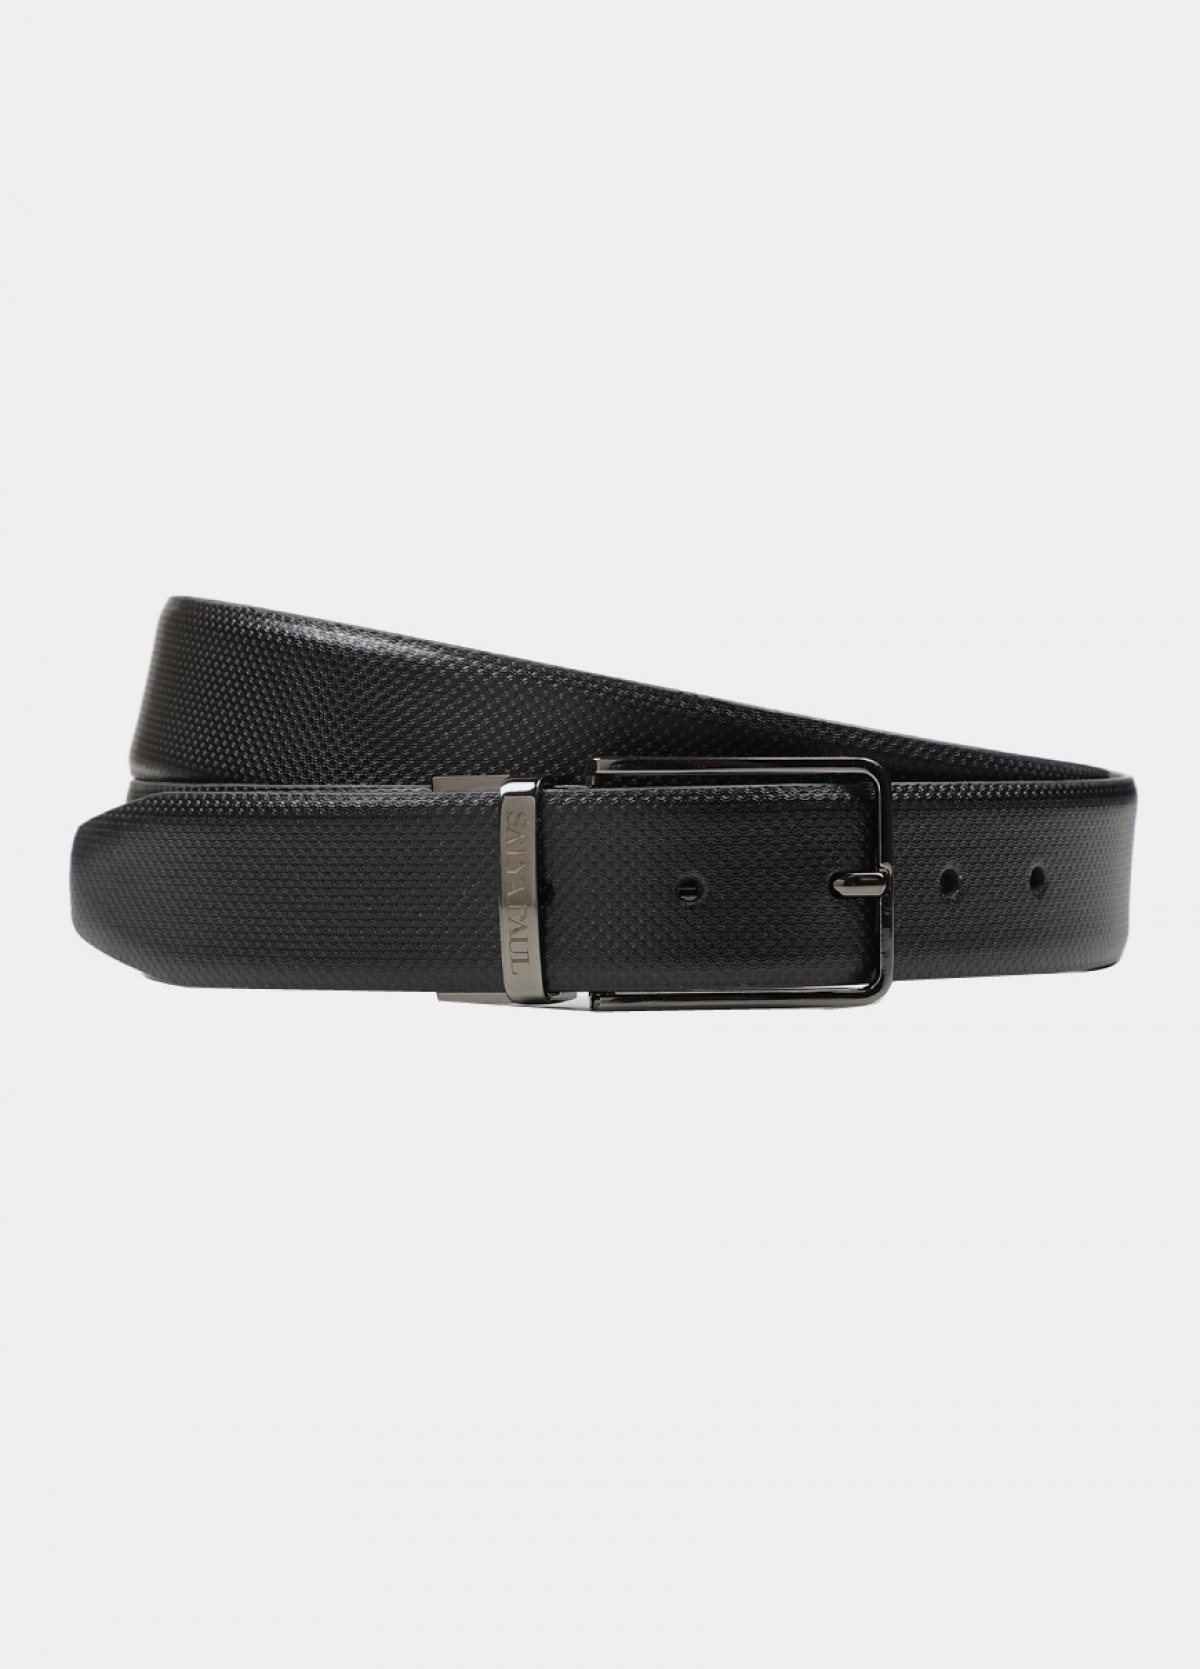 The Reversible Leather Belt